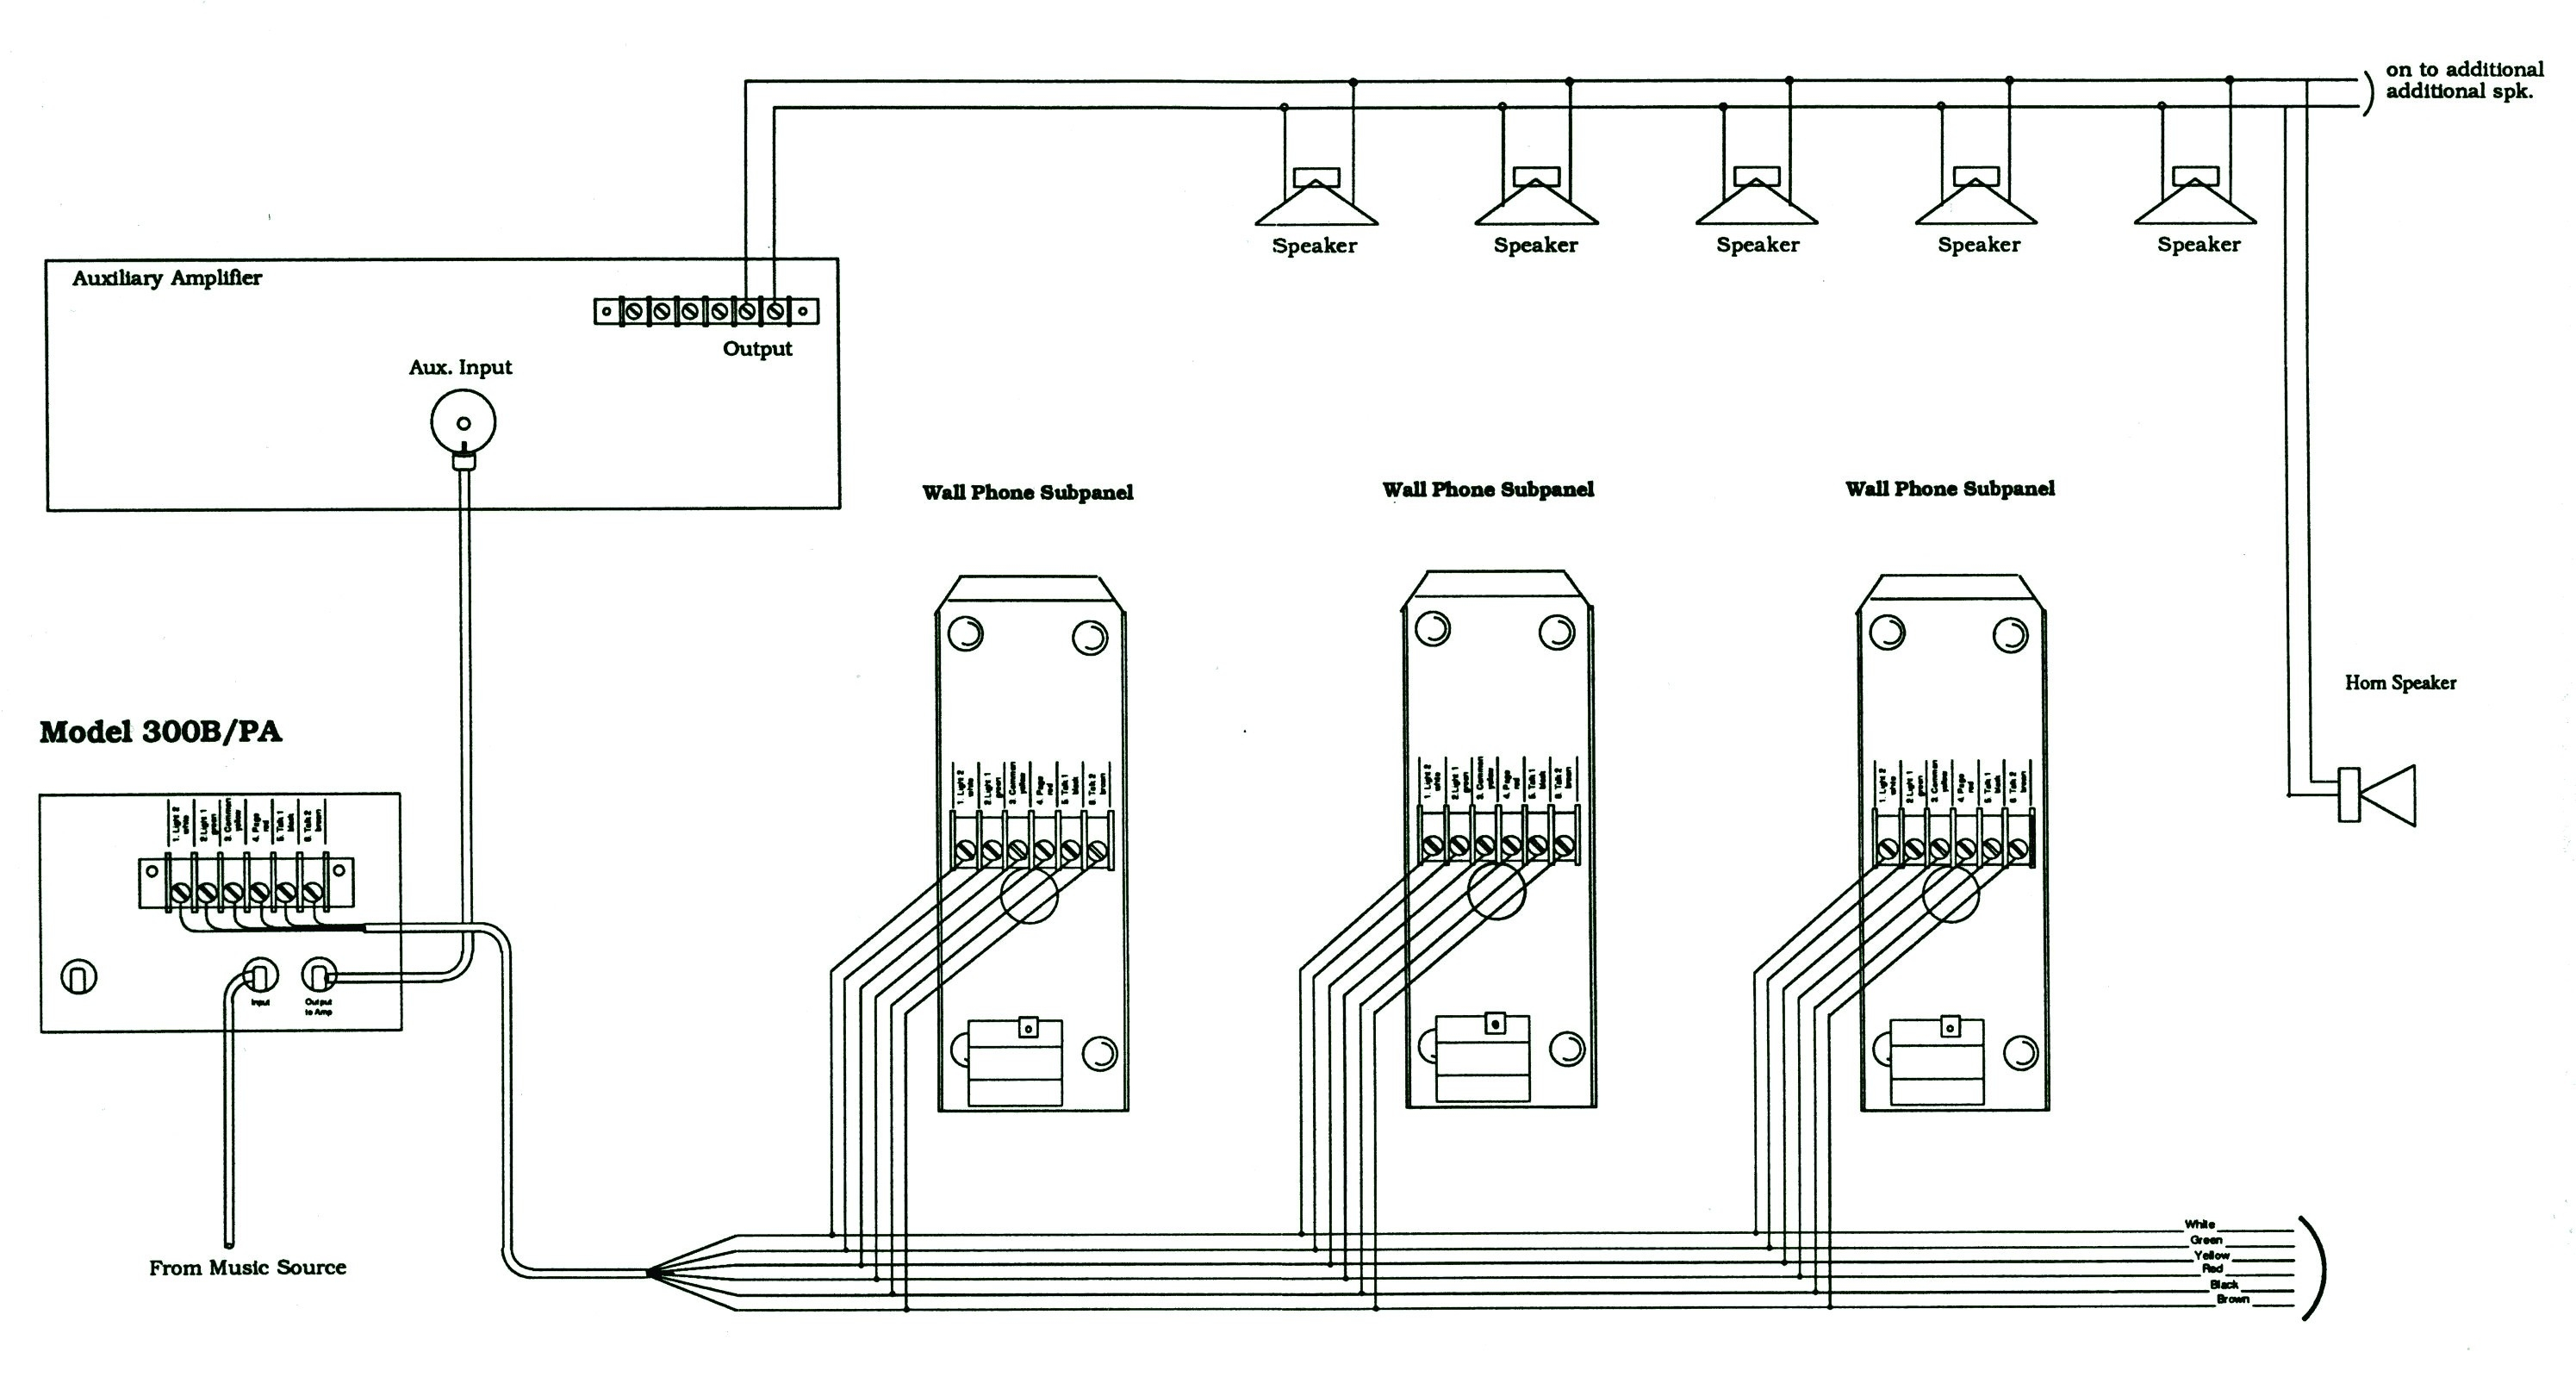 nutone door bell wiring diagrams nutone intercom wiring diagram | free wiring diagram